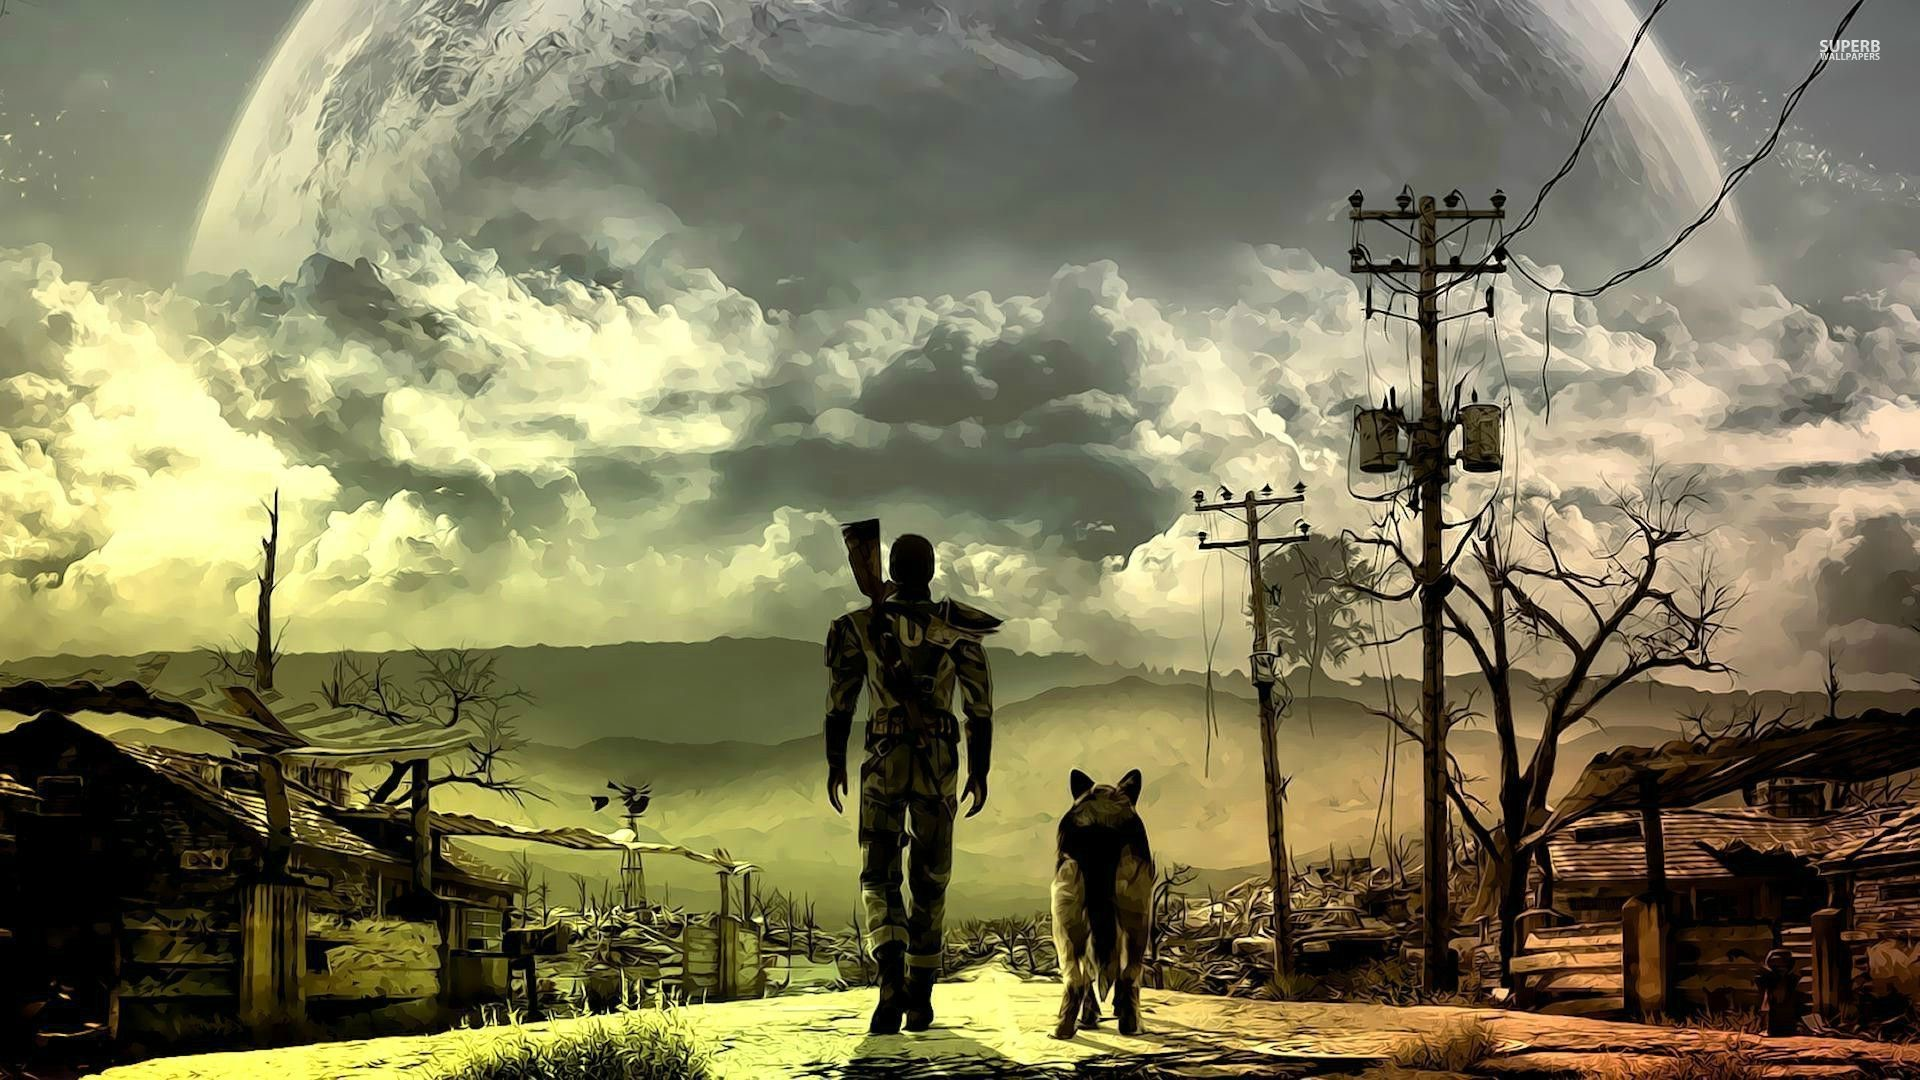 Fallout Wallpapers Wallpaper   HD Wallpapers   Pinterest   Fallout and  Wallpaper